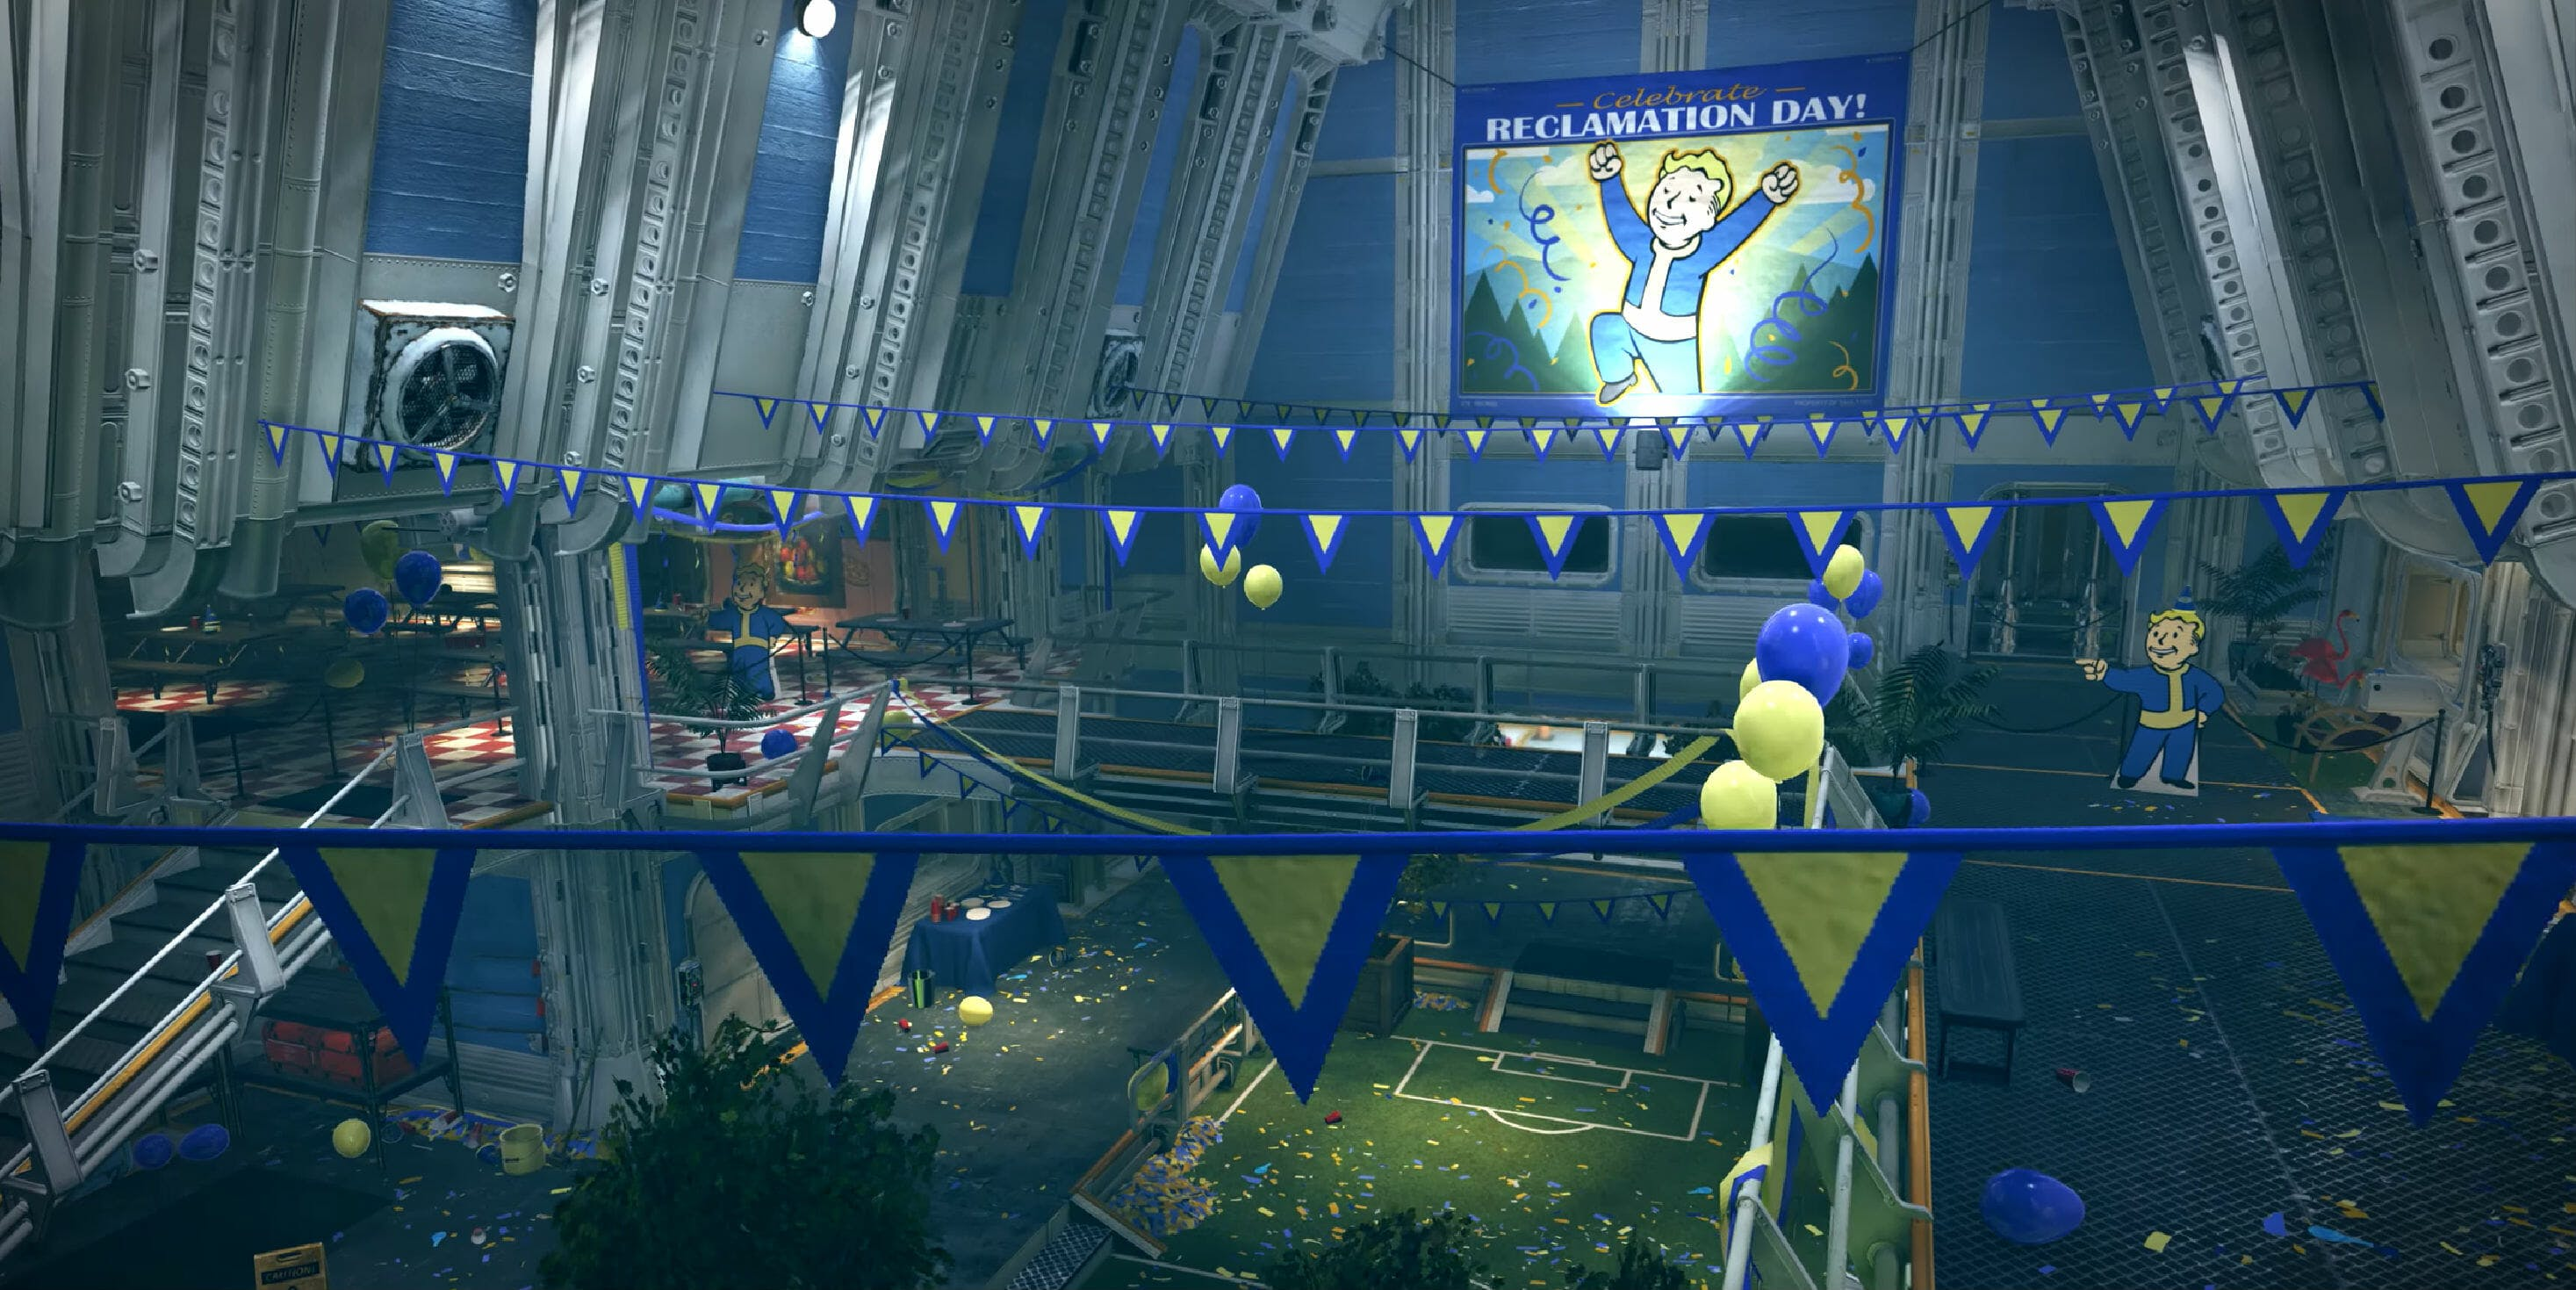 Fallout 76 : Inside Vault 76 on Reclamation Day